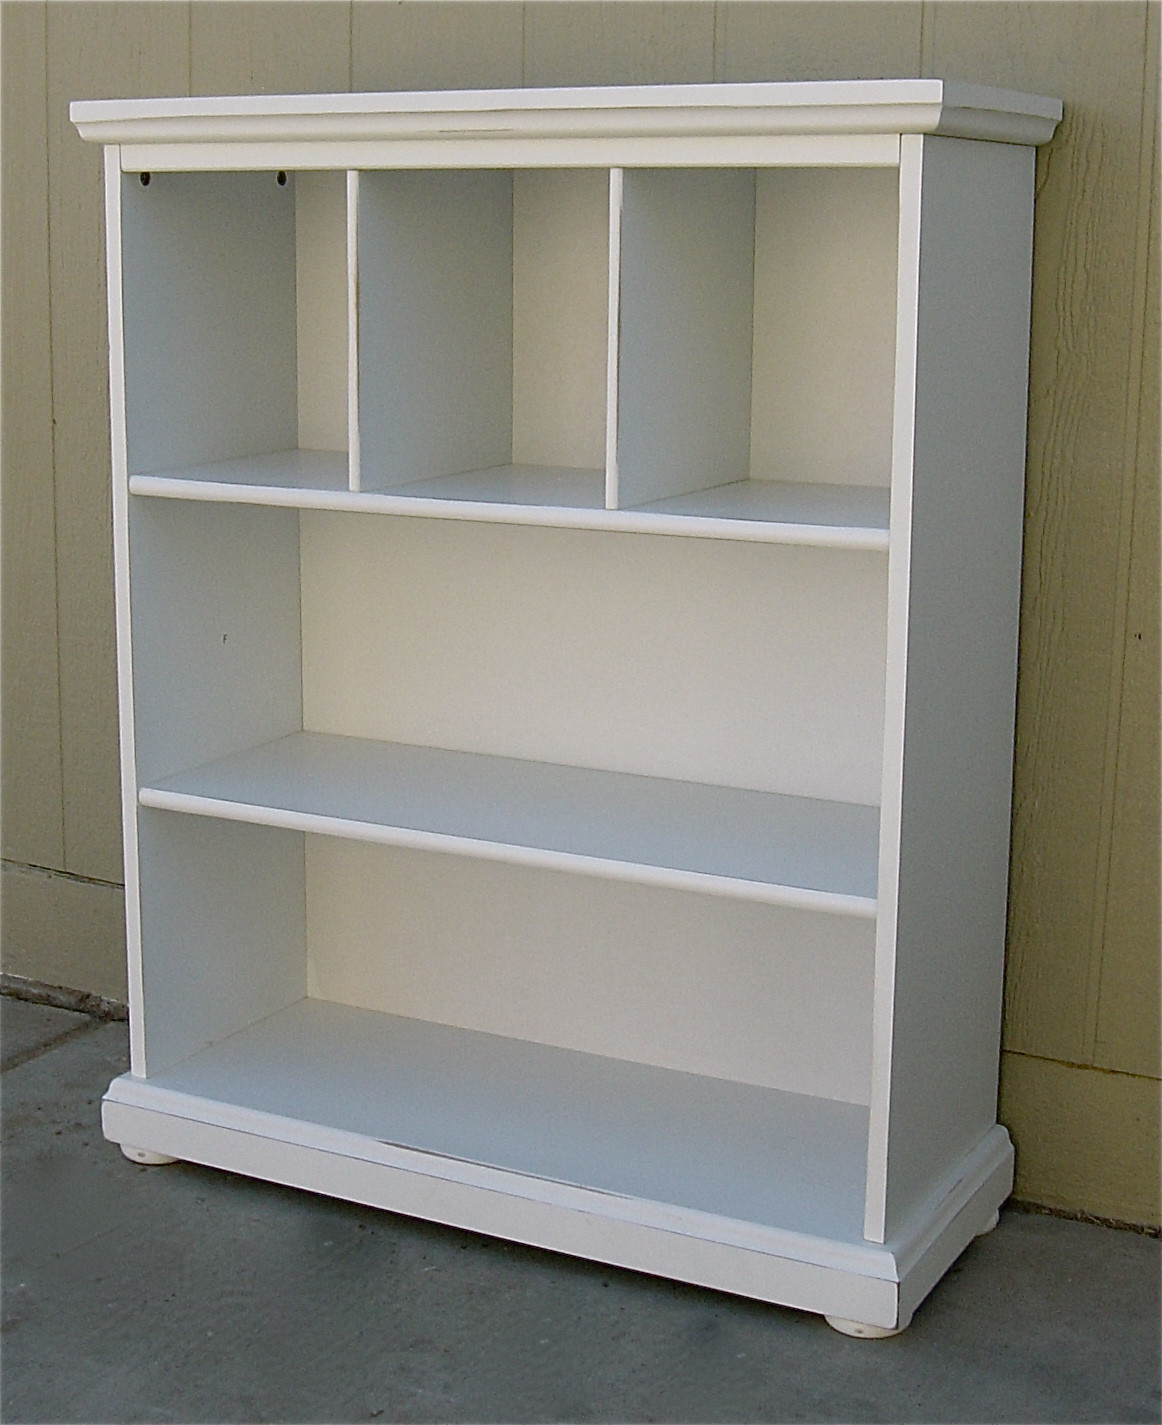 Best ideas about Shabby Chic Bookcase . Save or Pin The Backyard Boutique by Five to Nine Furnishings Shabby Now.